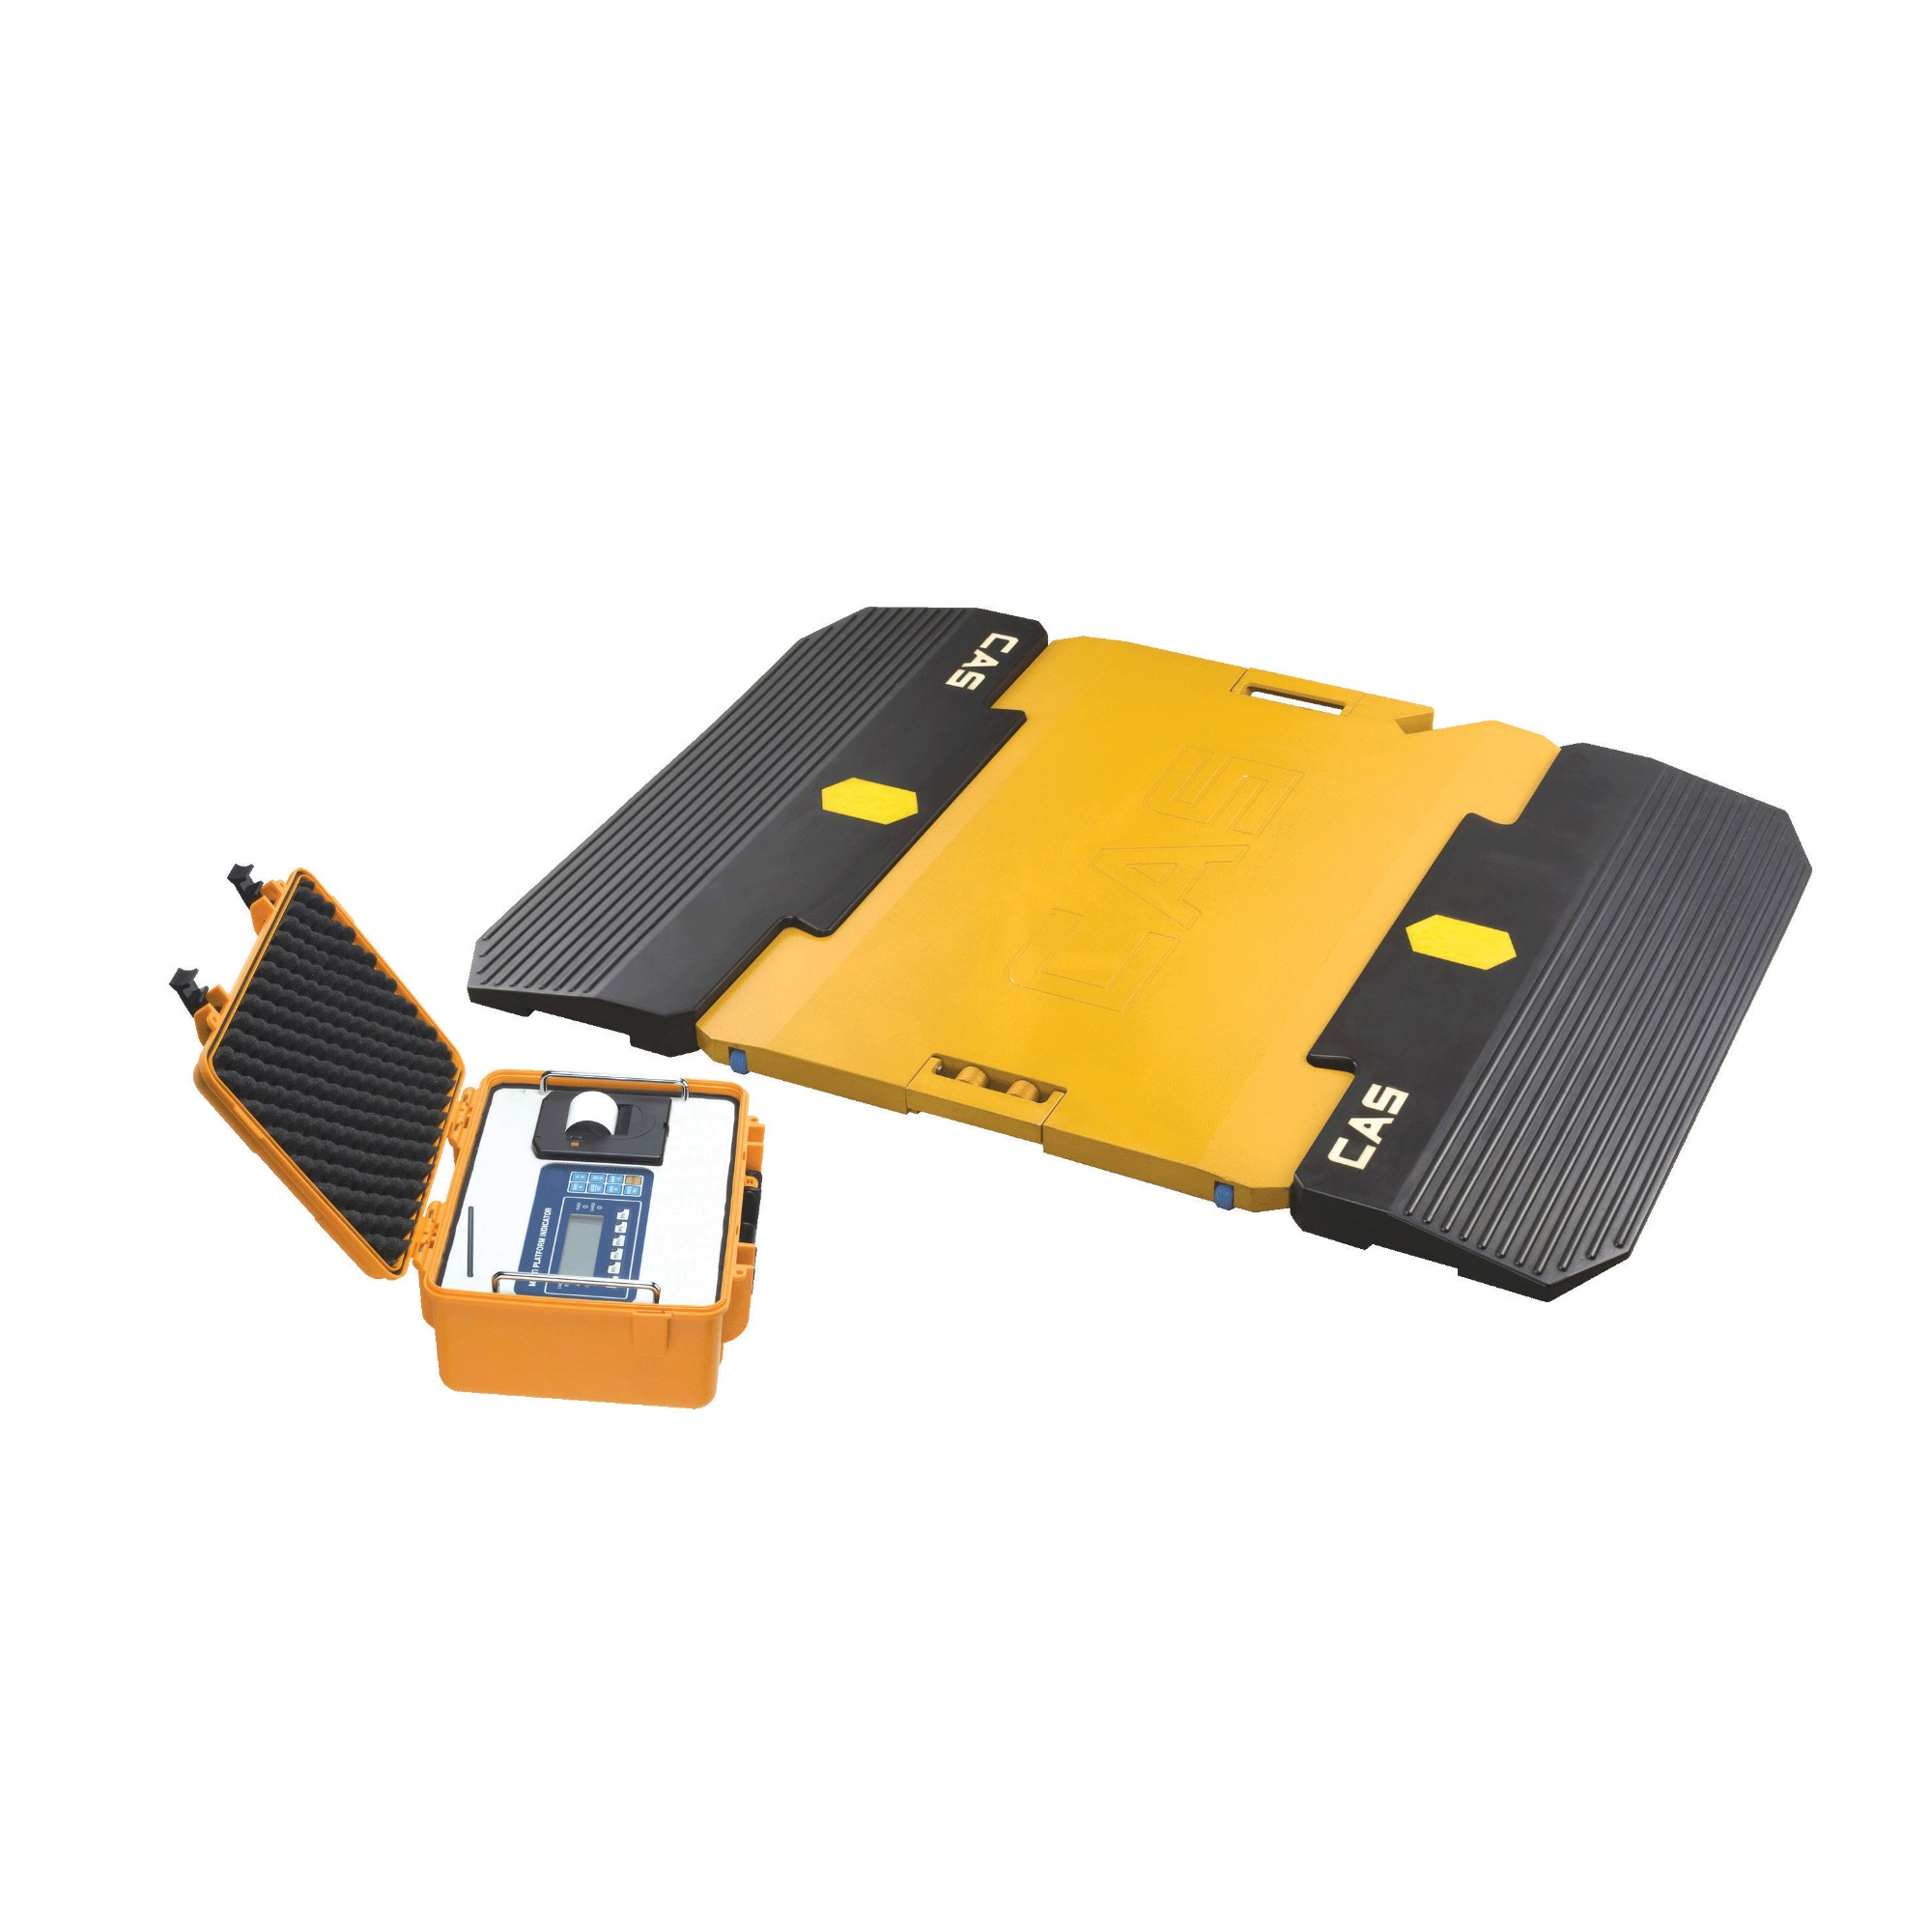 Easy carry 10 ton car weighing system